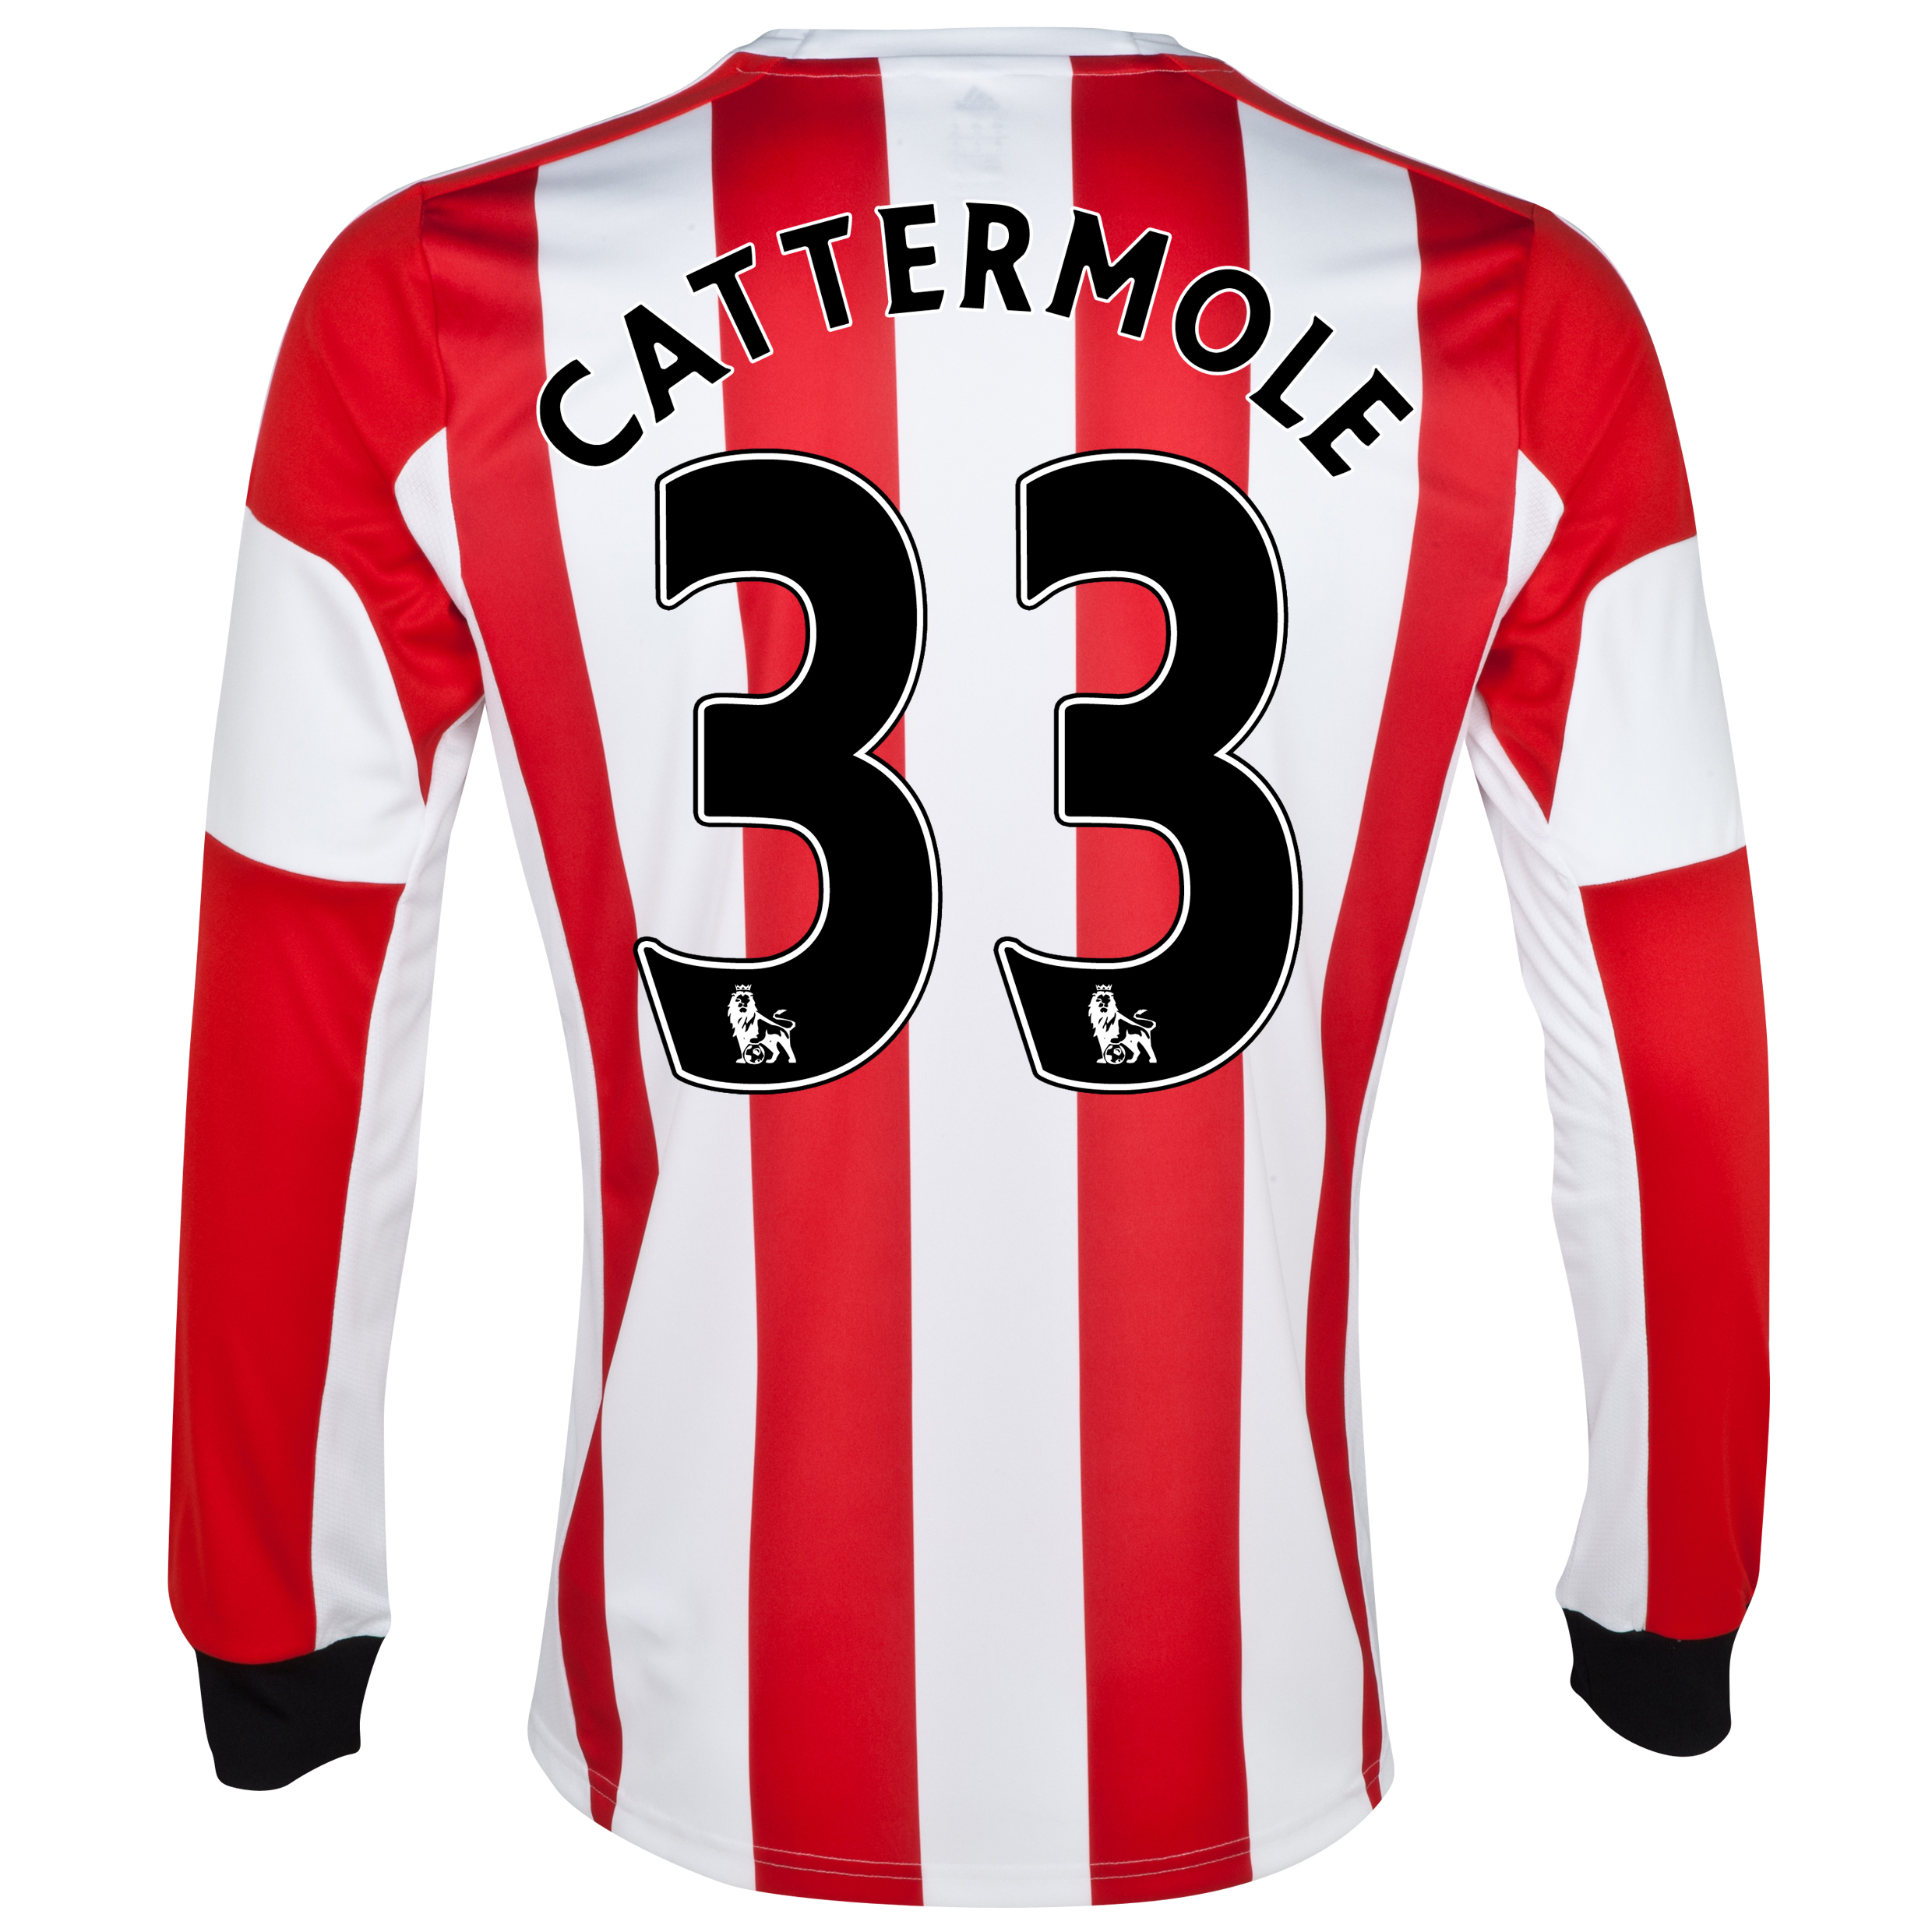 Sunderland Home Shirt 2013/14 - Long Sleeved - Junior with Cattermole 33 printing